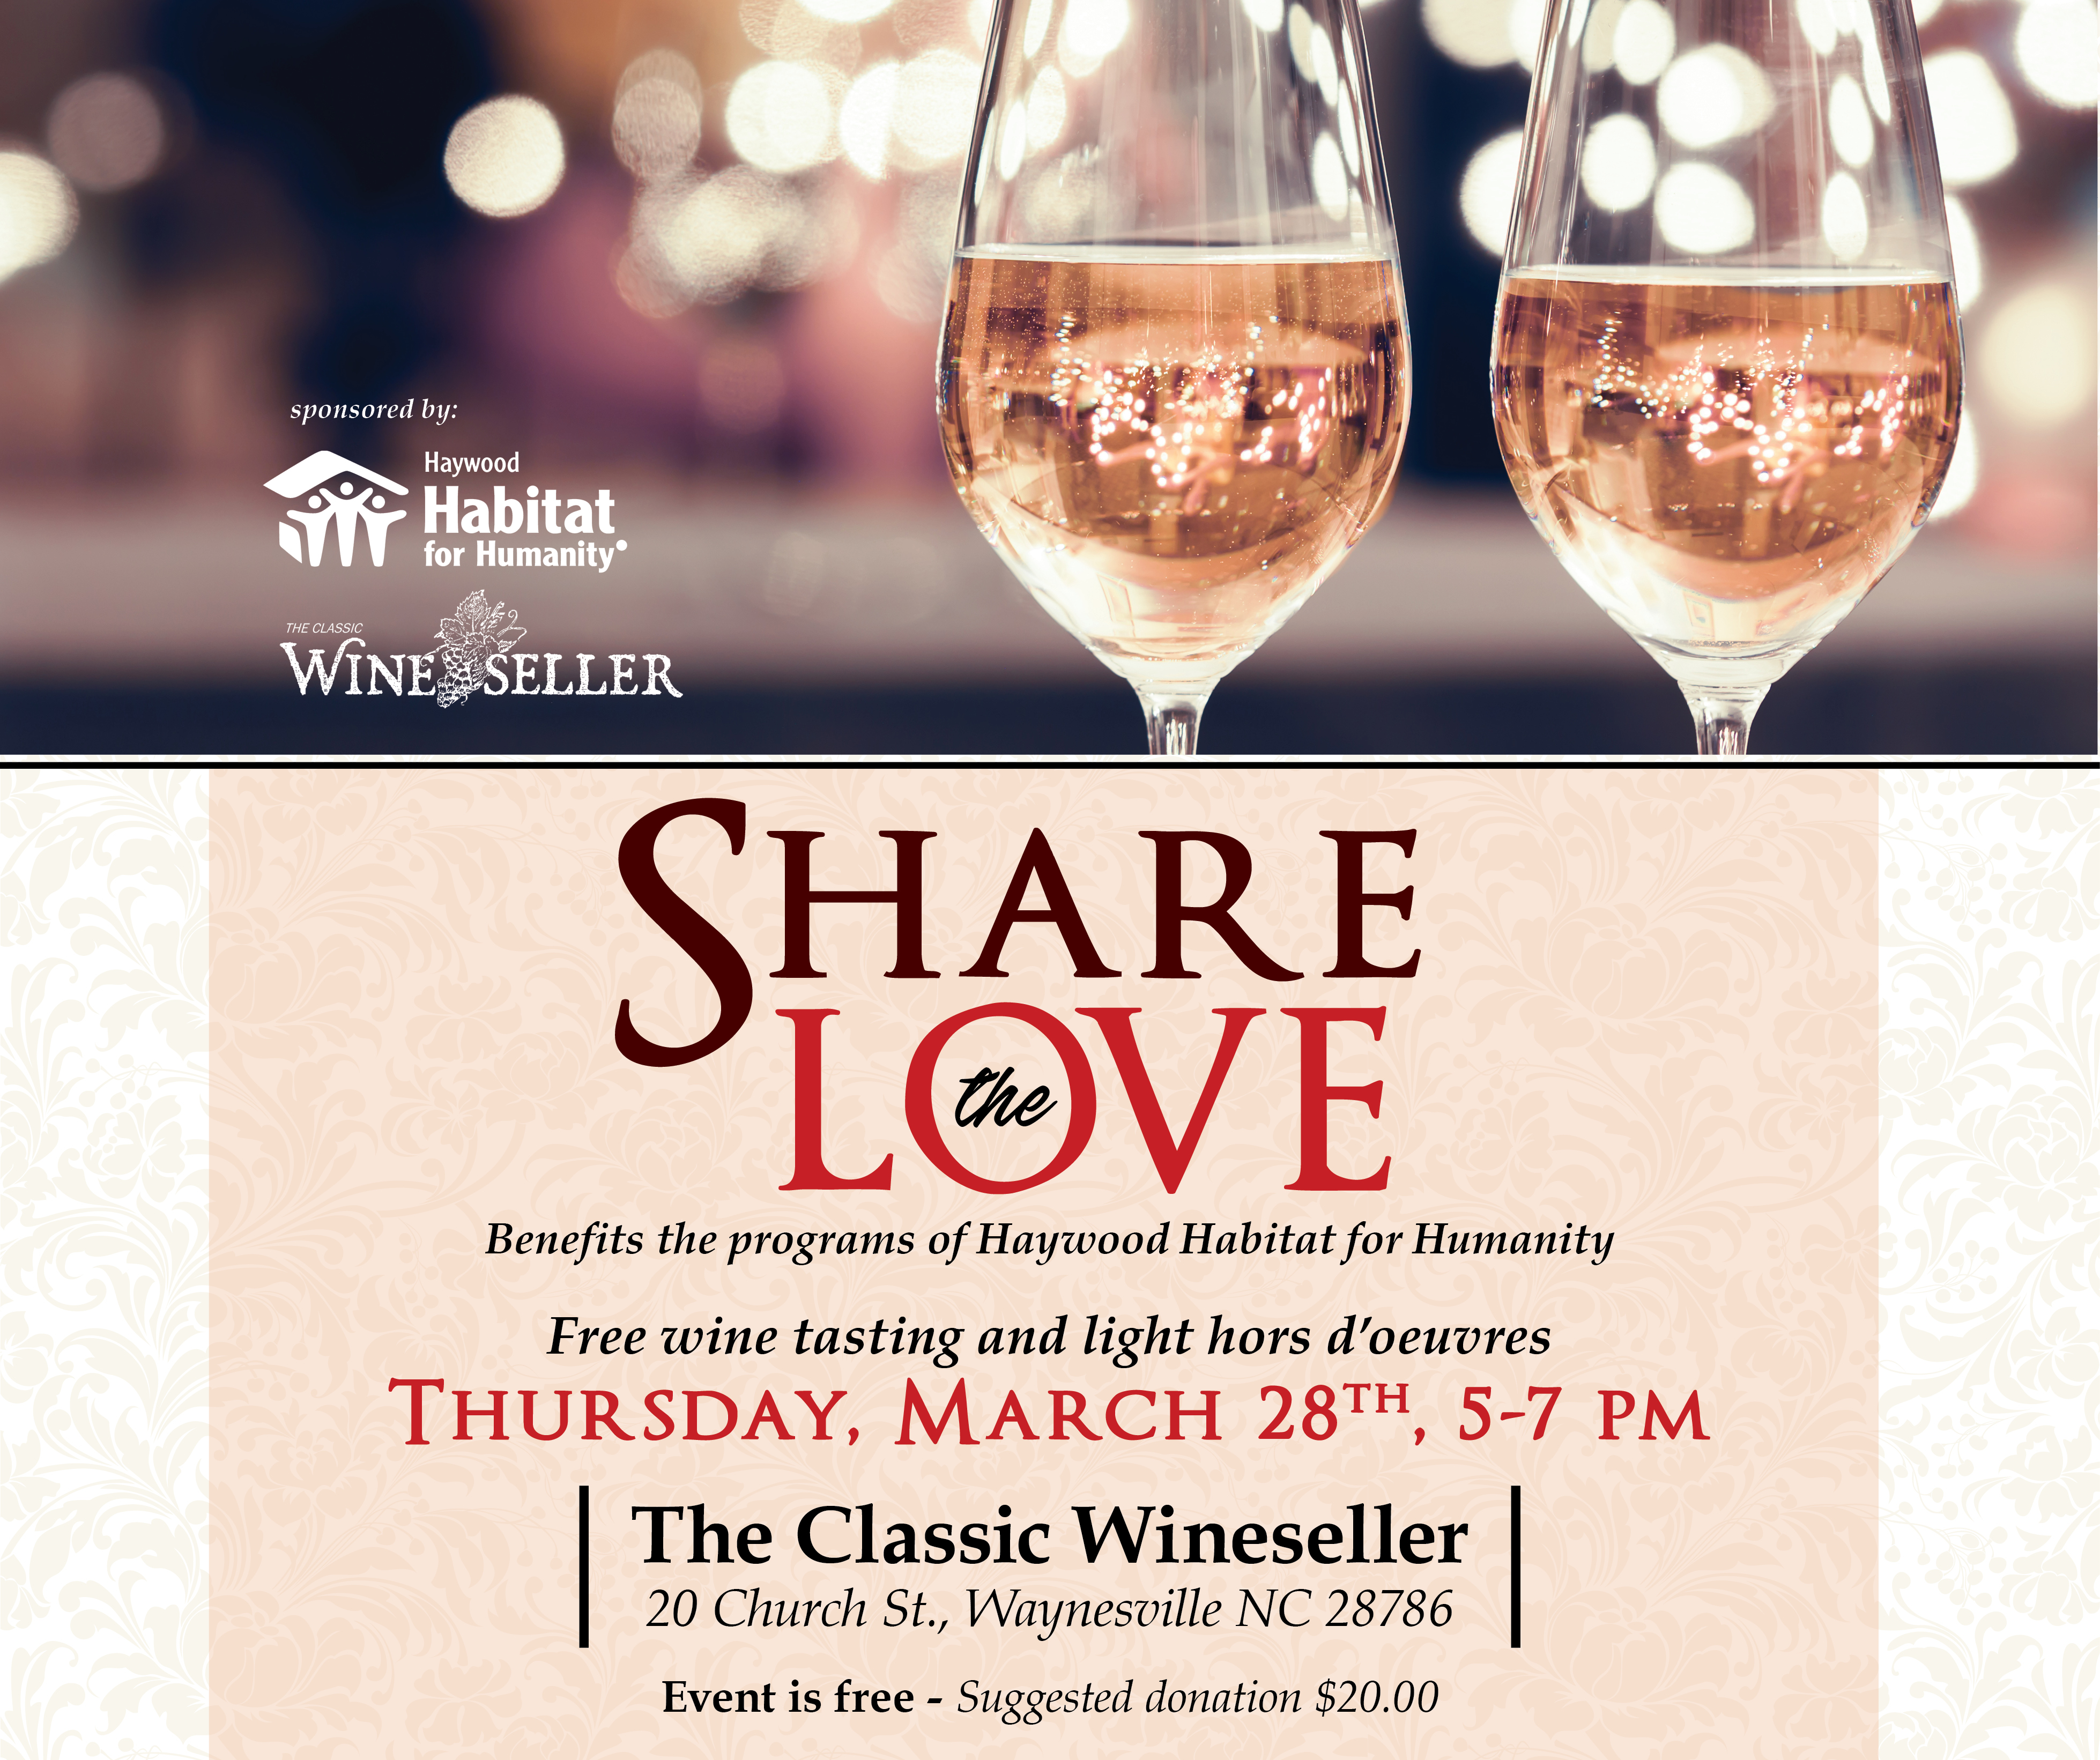 Share the Love in March